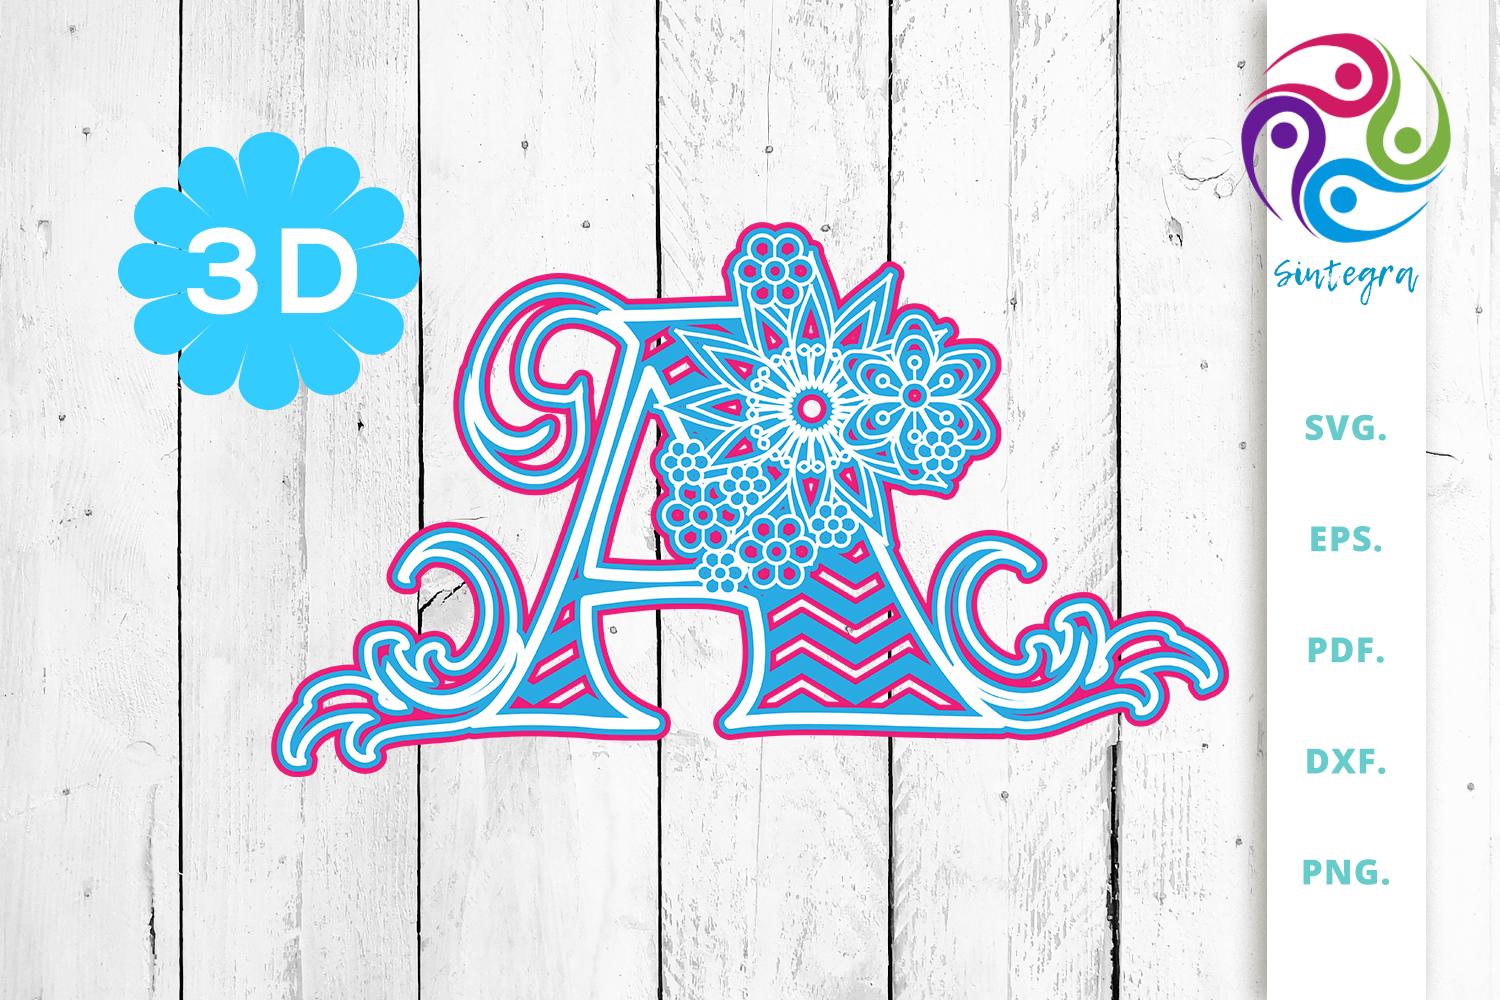 Download Free 3d Multilayer Floral Chevron Letter A Graphic By Sintegra for Cricut Explore, Silhouette and other cutting machines.